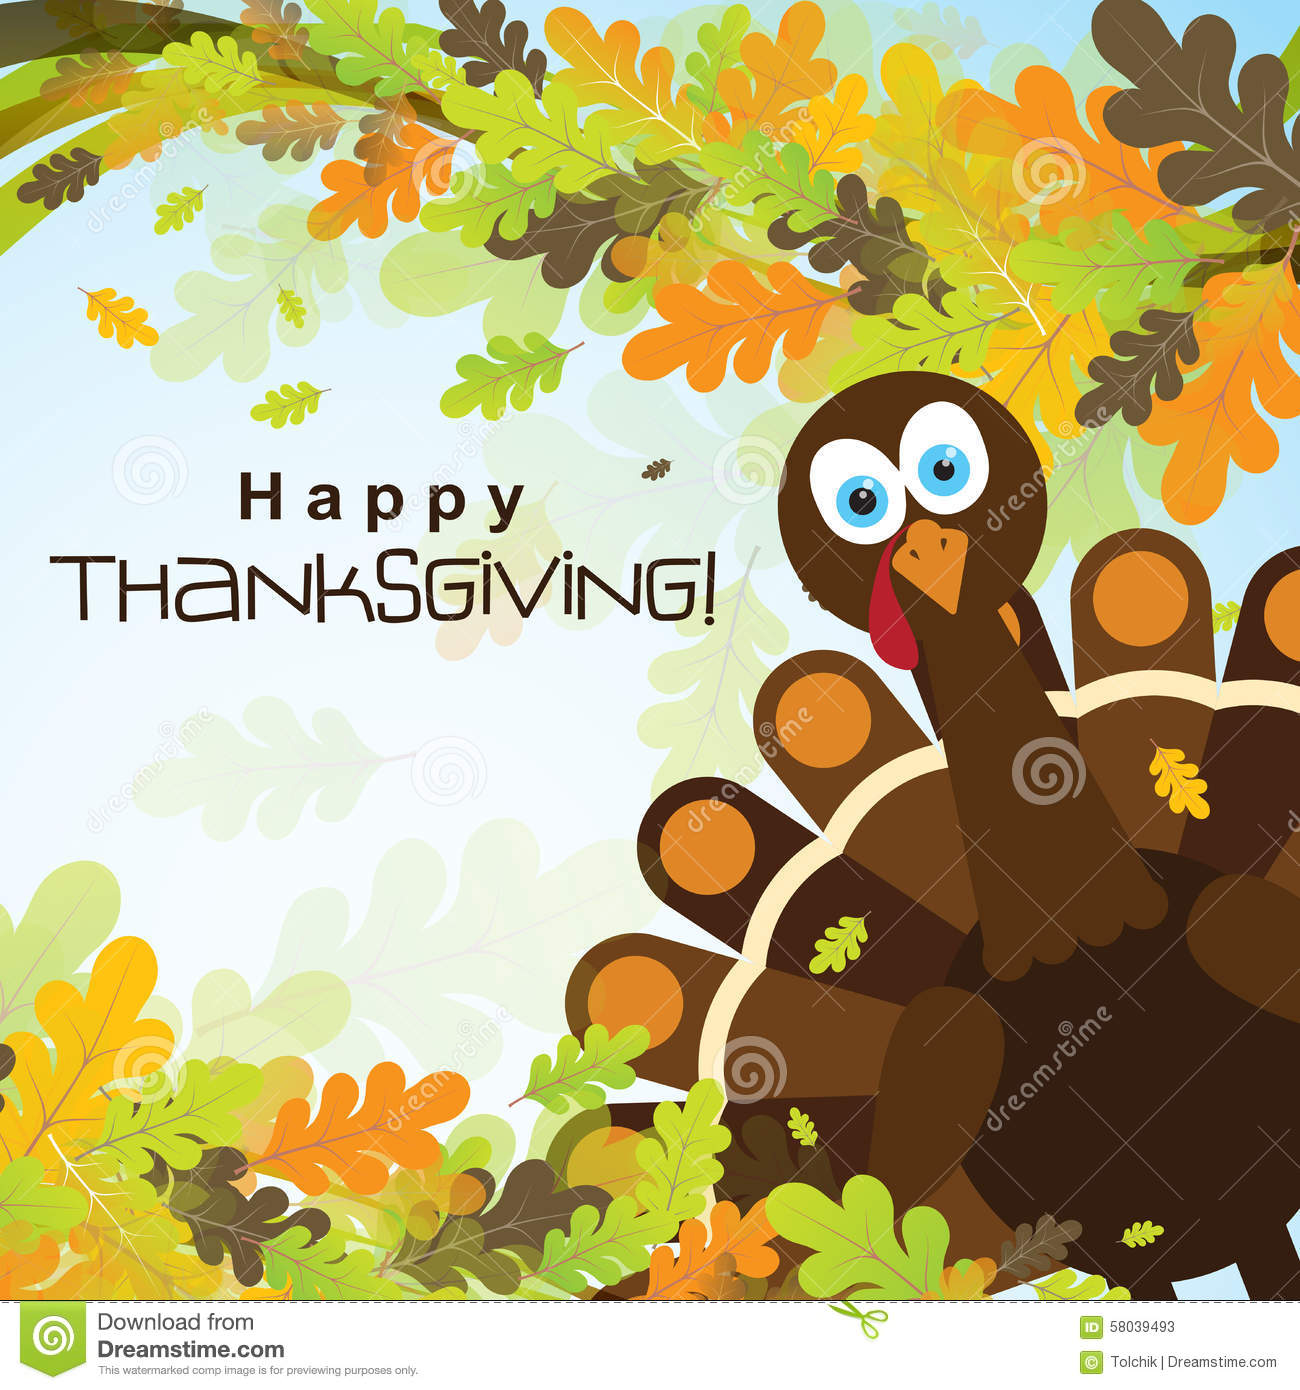 Template greeting card with a happy thanksgiving turkey vector download template greeting card with a happy thanksgiving turkey vector stock vector illustration of m4hsunfo